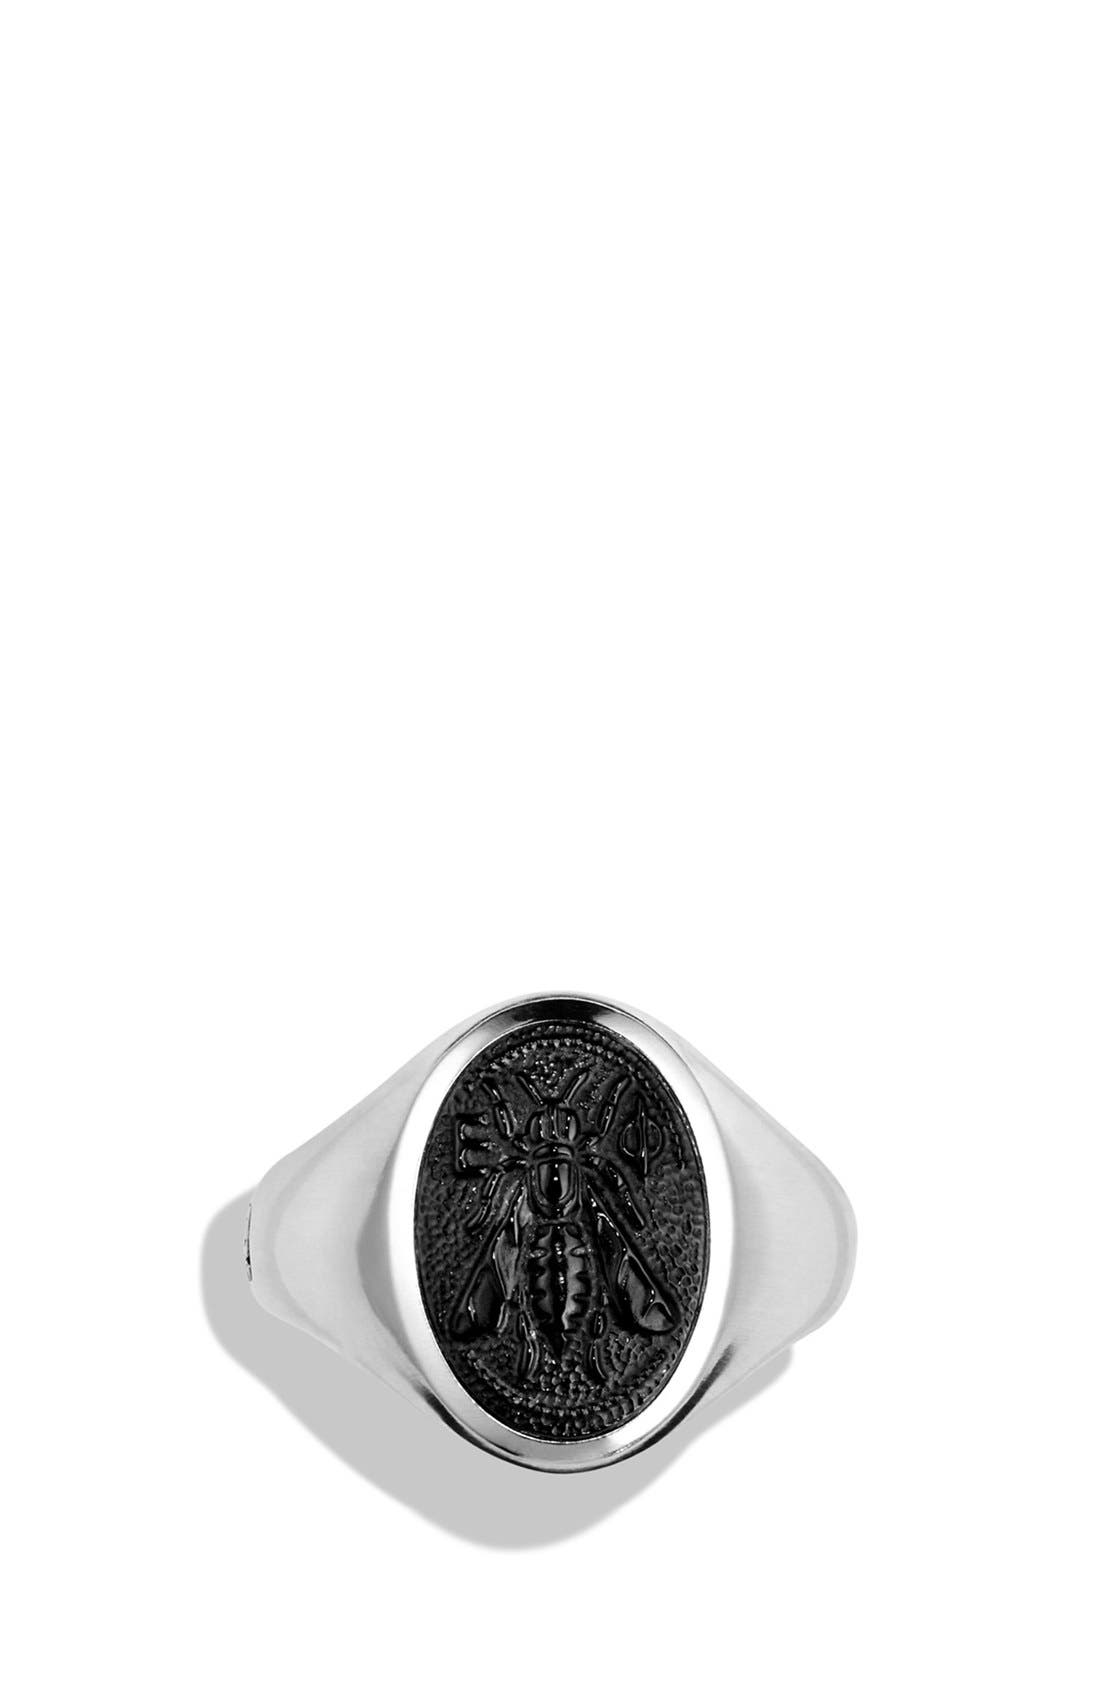 'Petrvs' Bee Signet Ring with Semiprecious Stone,                             Alternate thumbnail 2, color,                             002